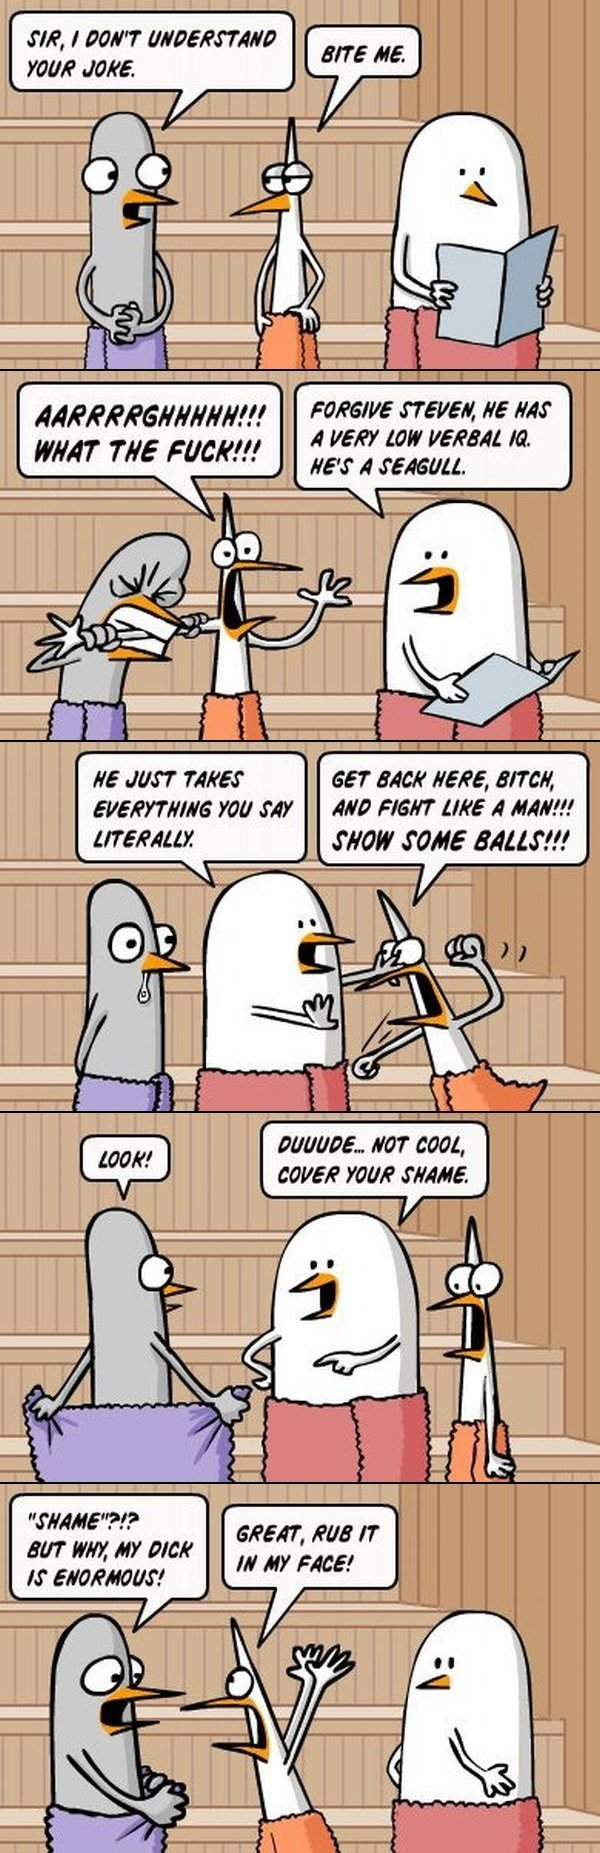 literalbirdscomic - yet some more pics and a joke or two i thought id share